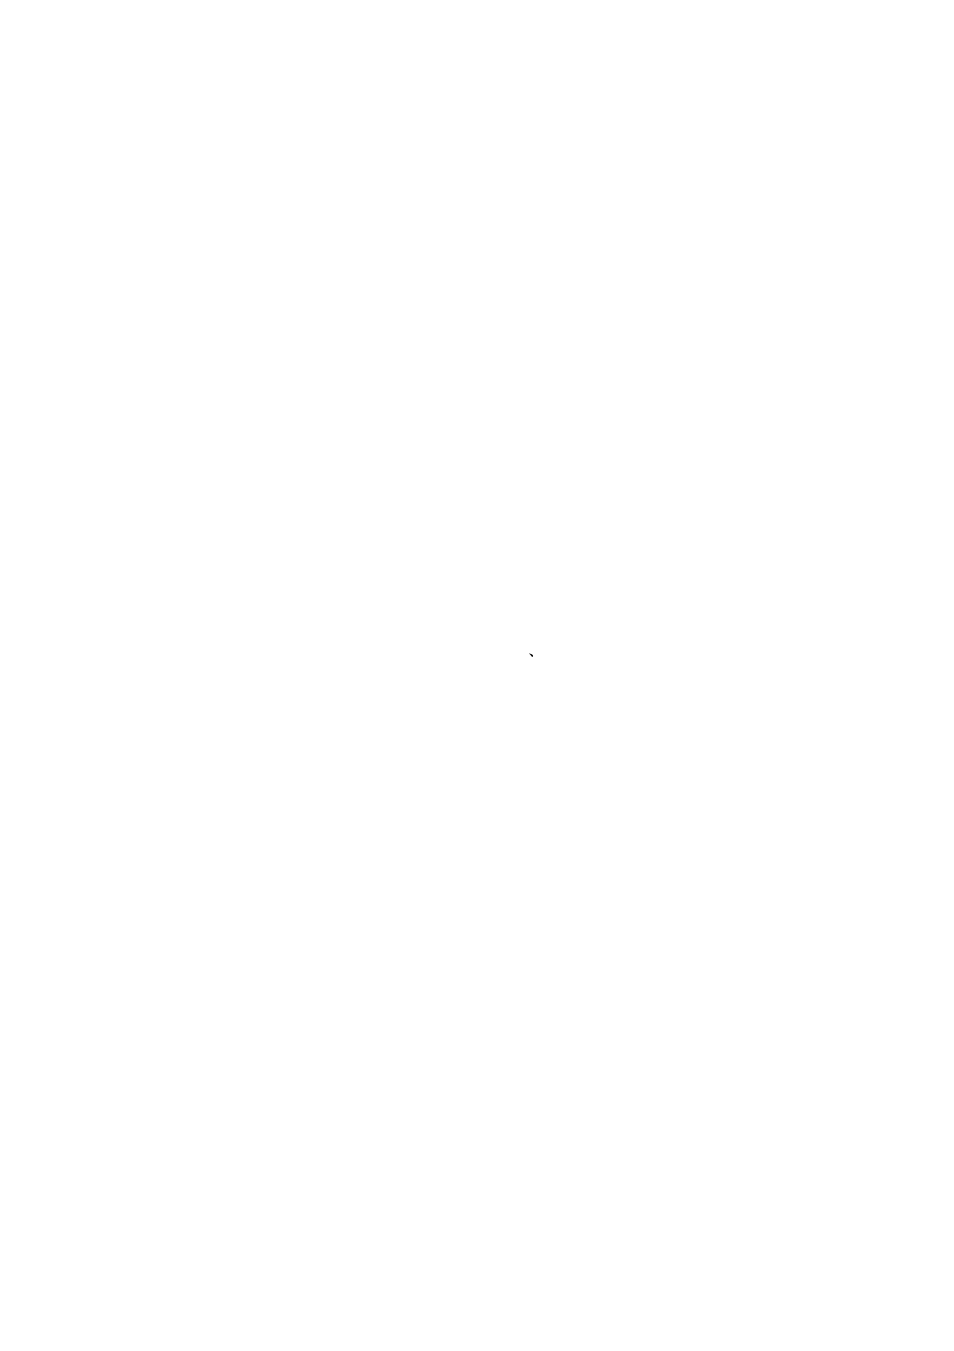 LevelOne WCS-6050 User Manual   Page 28 / 54   Also for: WCS